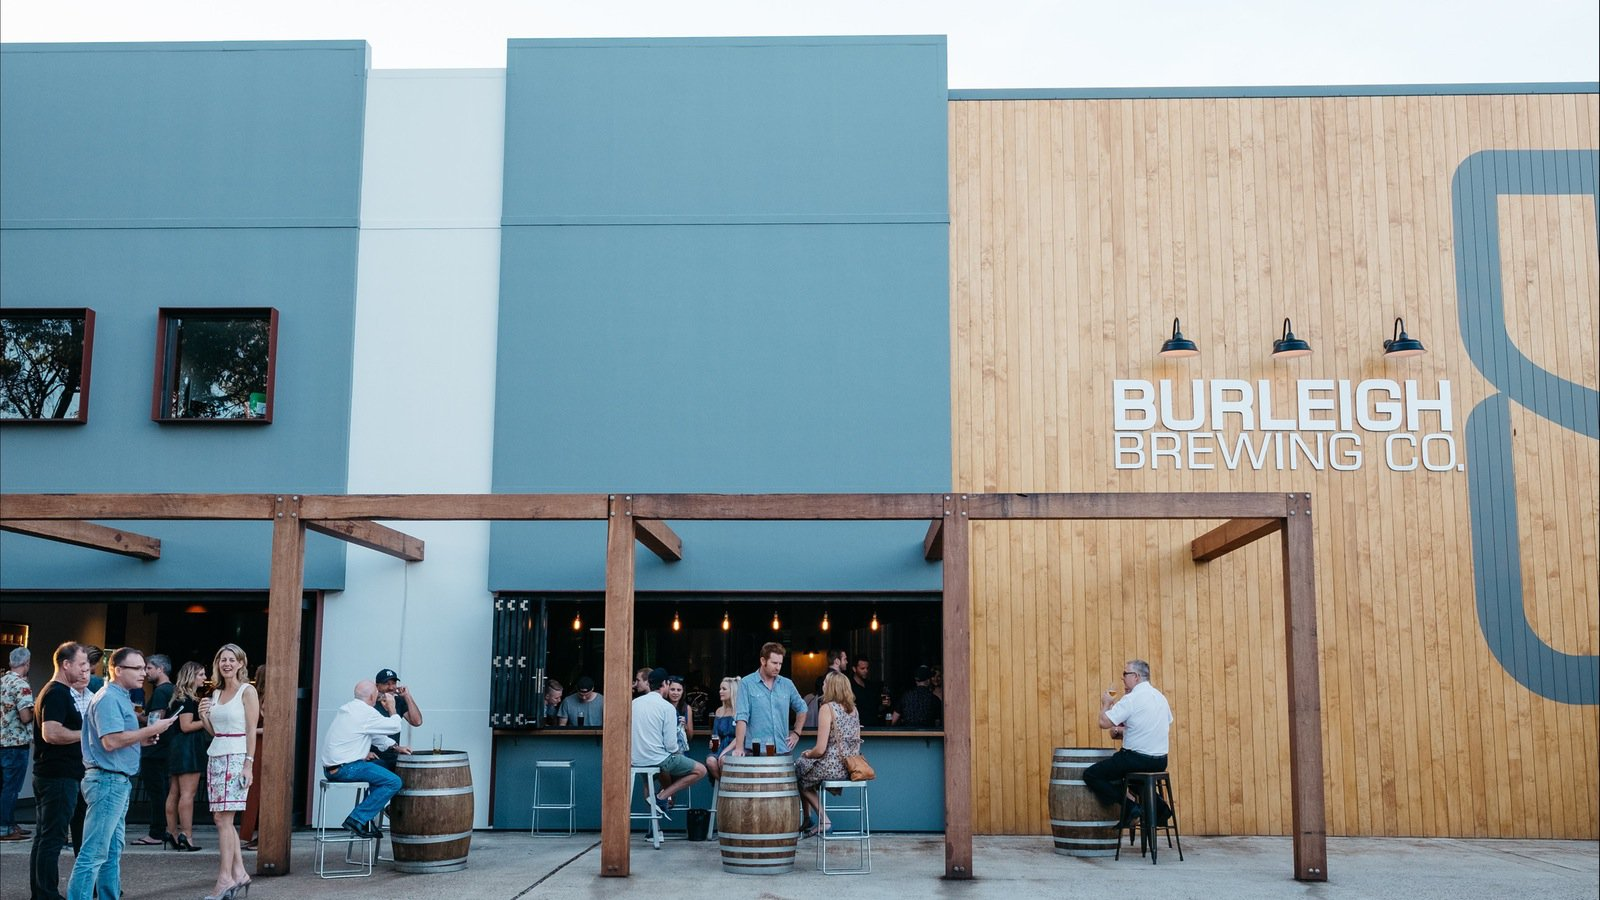 Burleigh Brewing Co. - A great example of a modern Southern Gold Coast enterprise, bringing jobs and money into the area while enhancing the area's brand and reputation. (Image courtesy of the Gold Coast Tourism Corporation.)